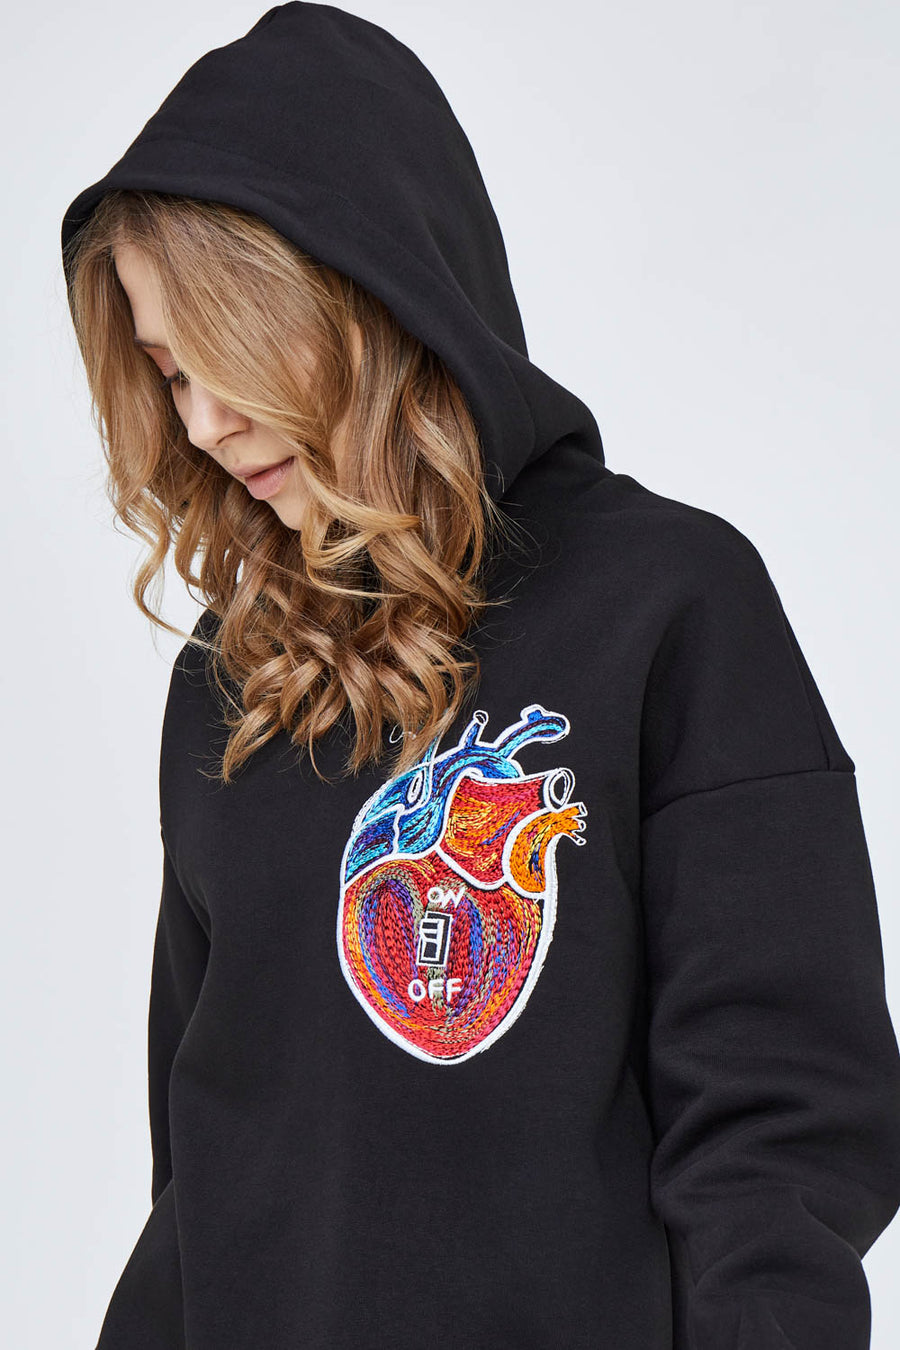 Heart On/Heart Off Hoodie in Classic Black